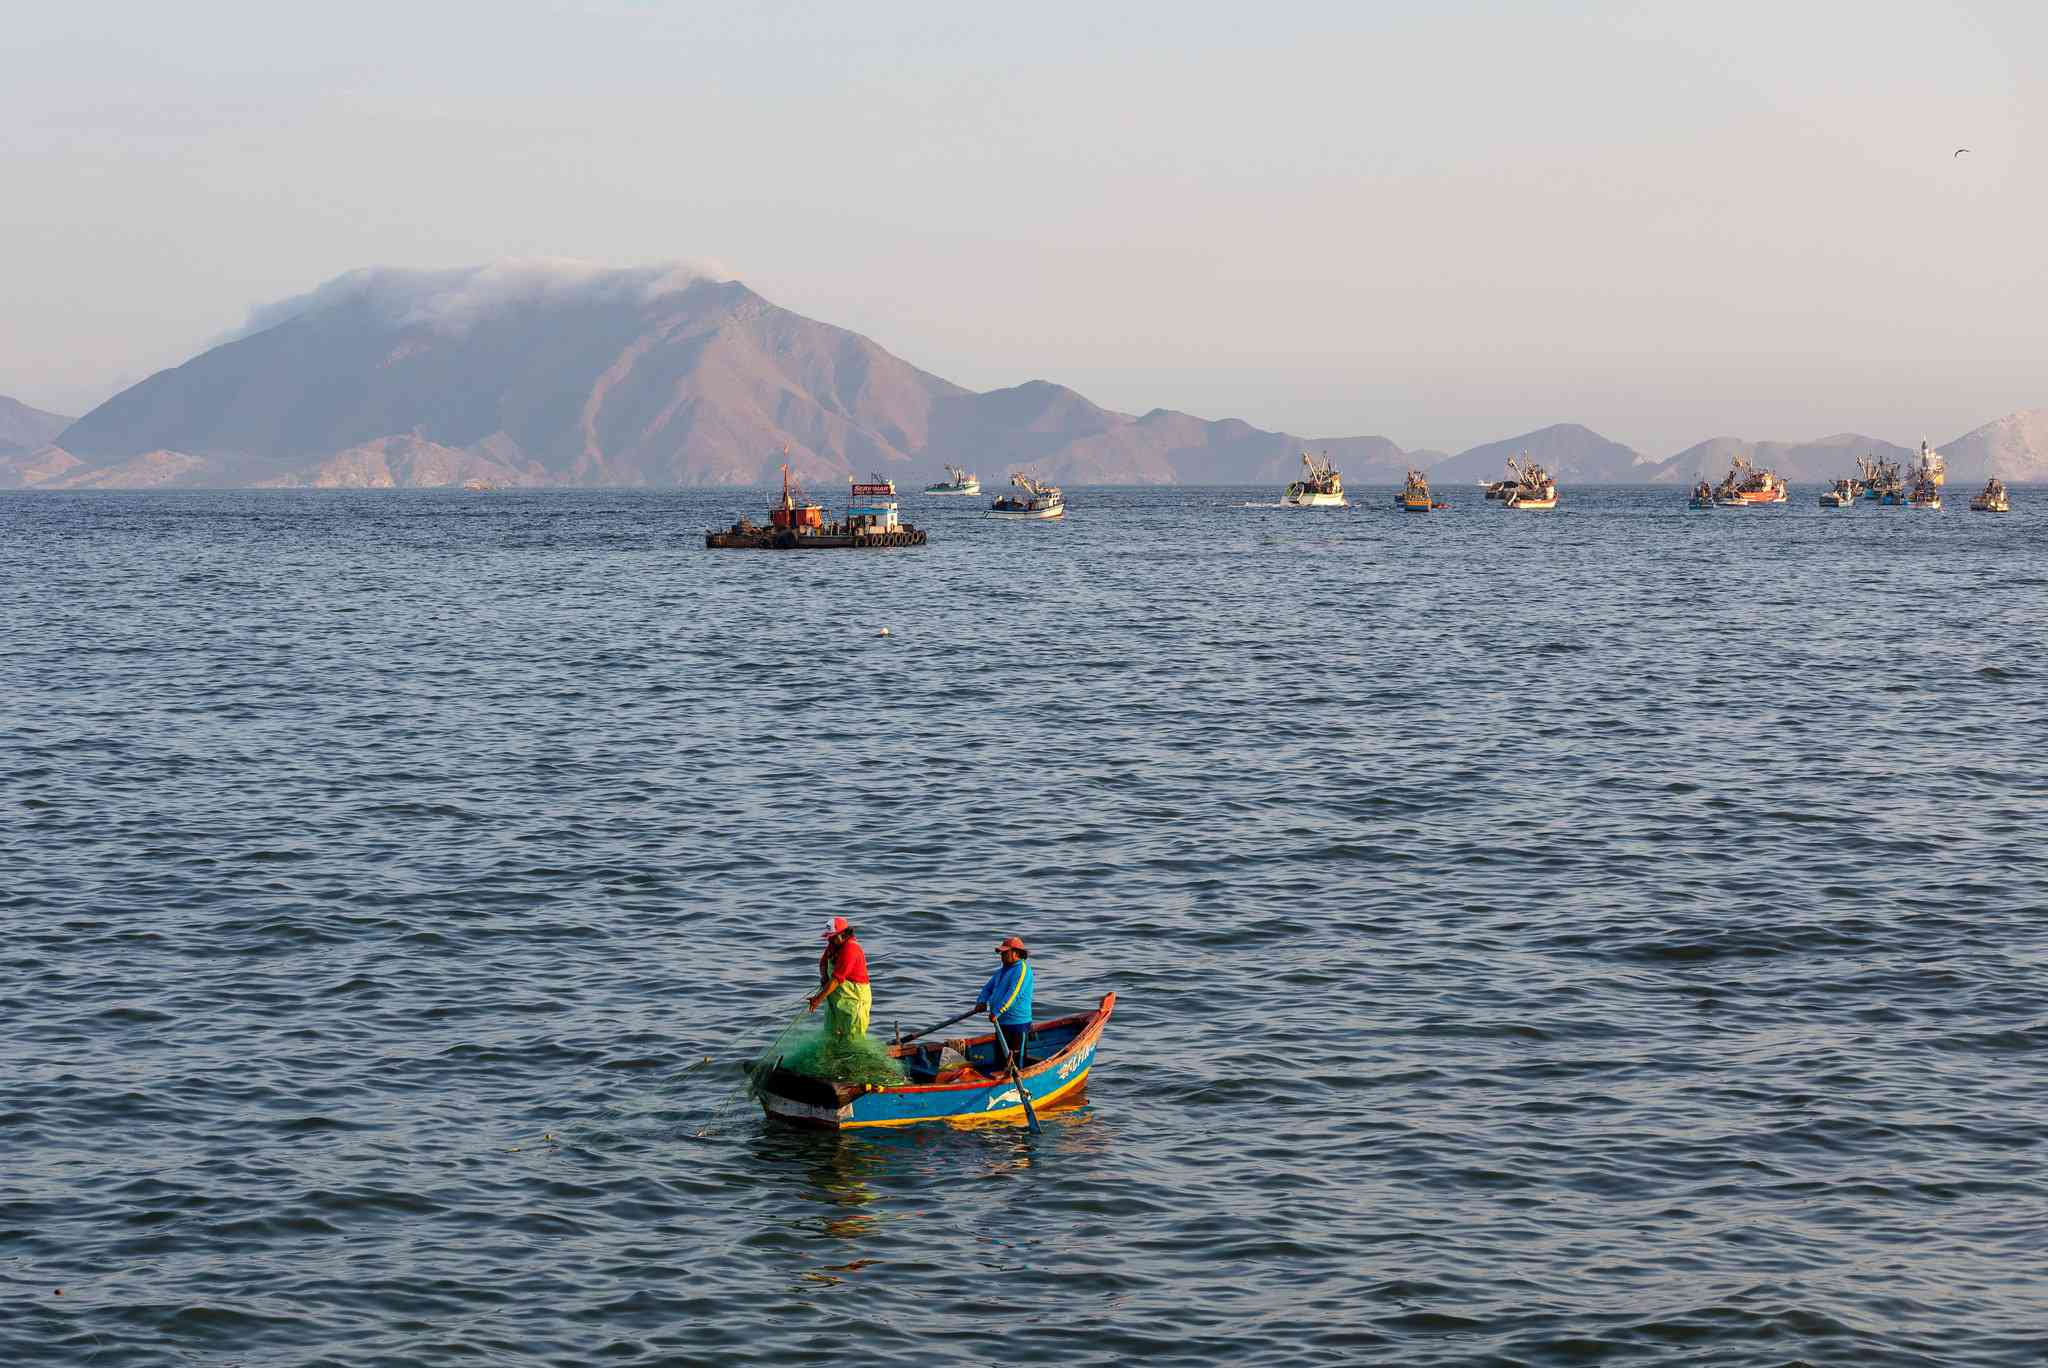 Fishing day in the Chimbote bay